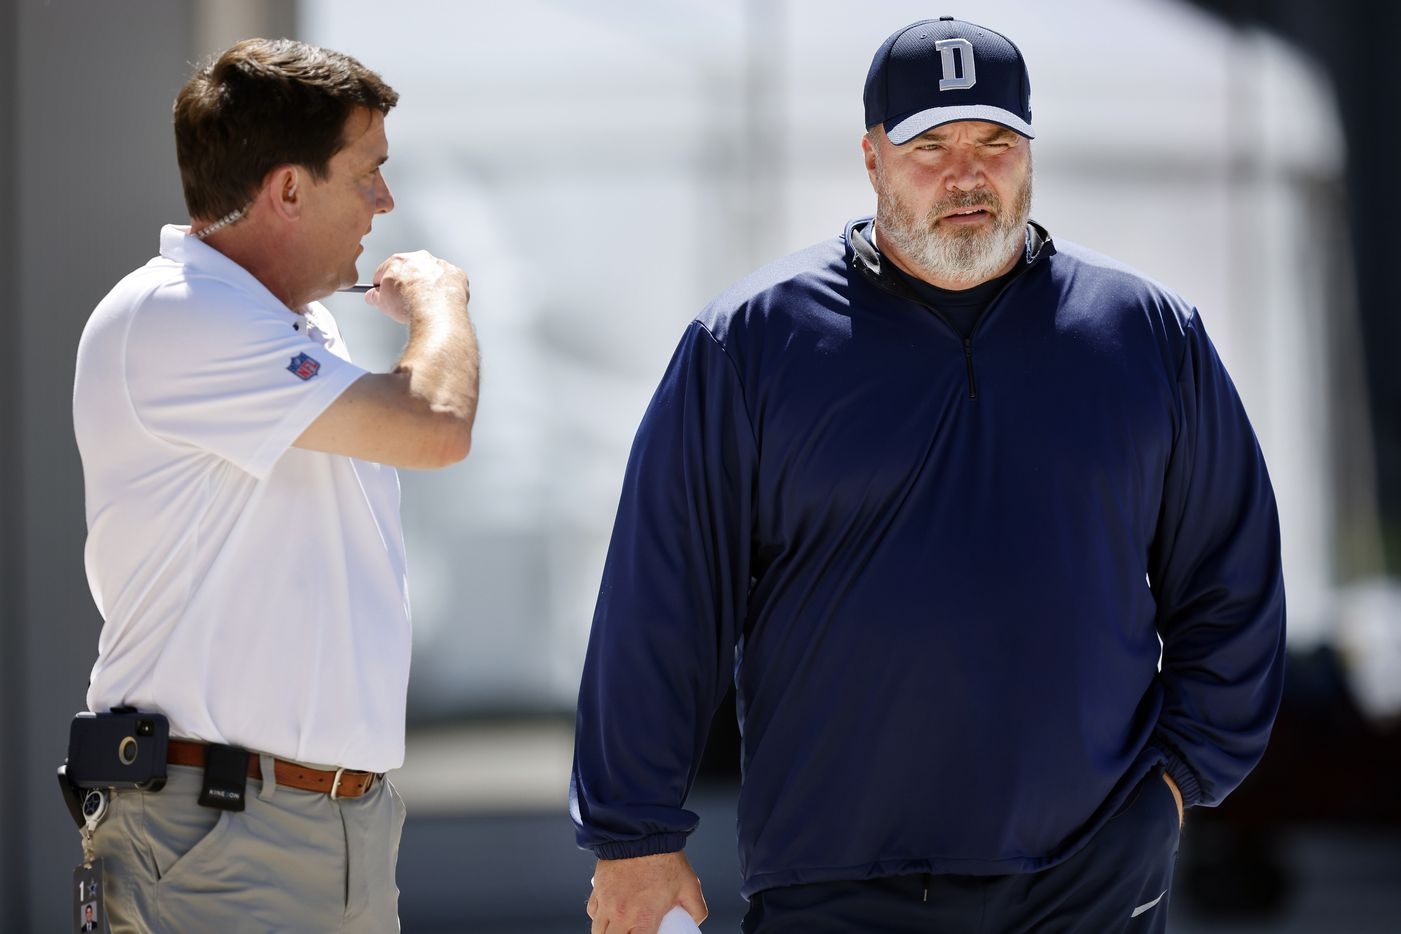 Dallas Cowboys athletic trainer Jim Maurer (left) briefs head coach Mike McCarthy as he arrives for Training Camp practice at The Star in Frisco, Texas, Tuesday, August 24, 2021.(Tom Fox/The Dallas Morning News)